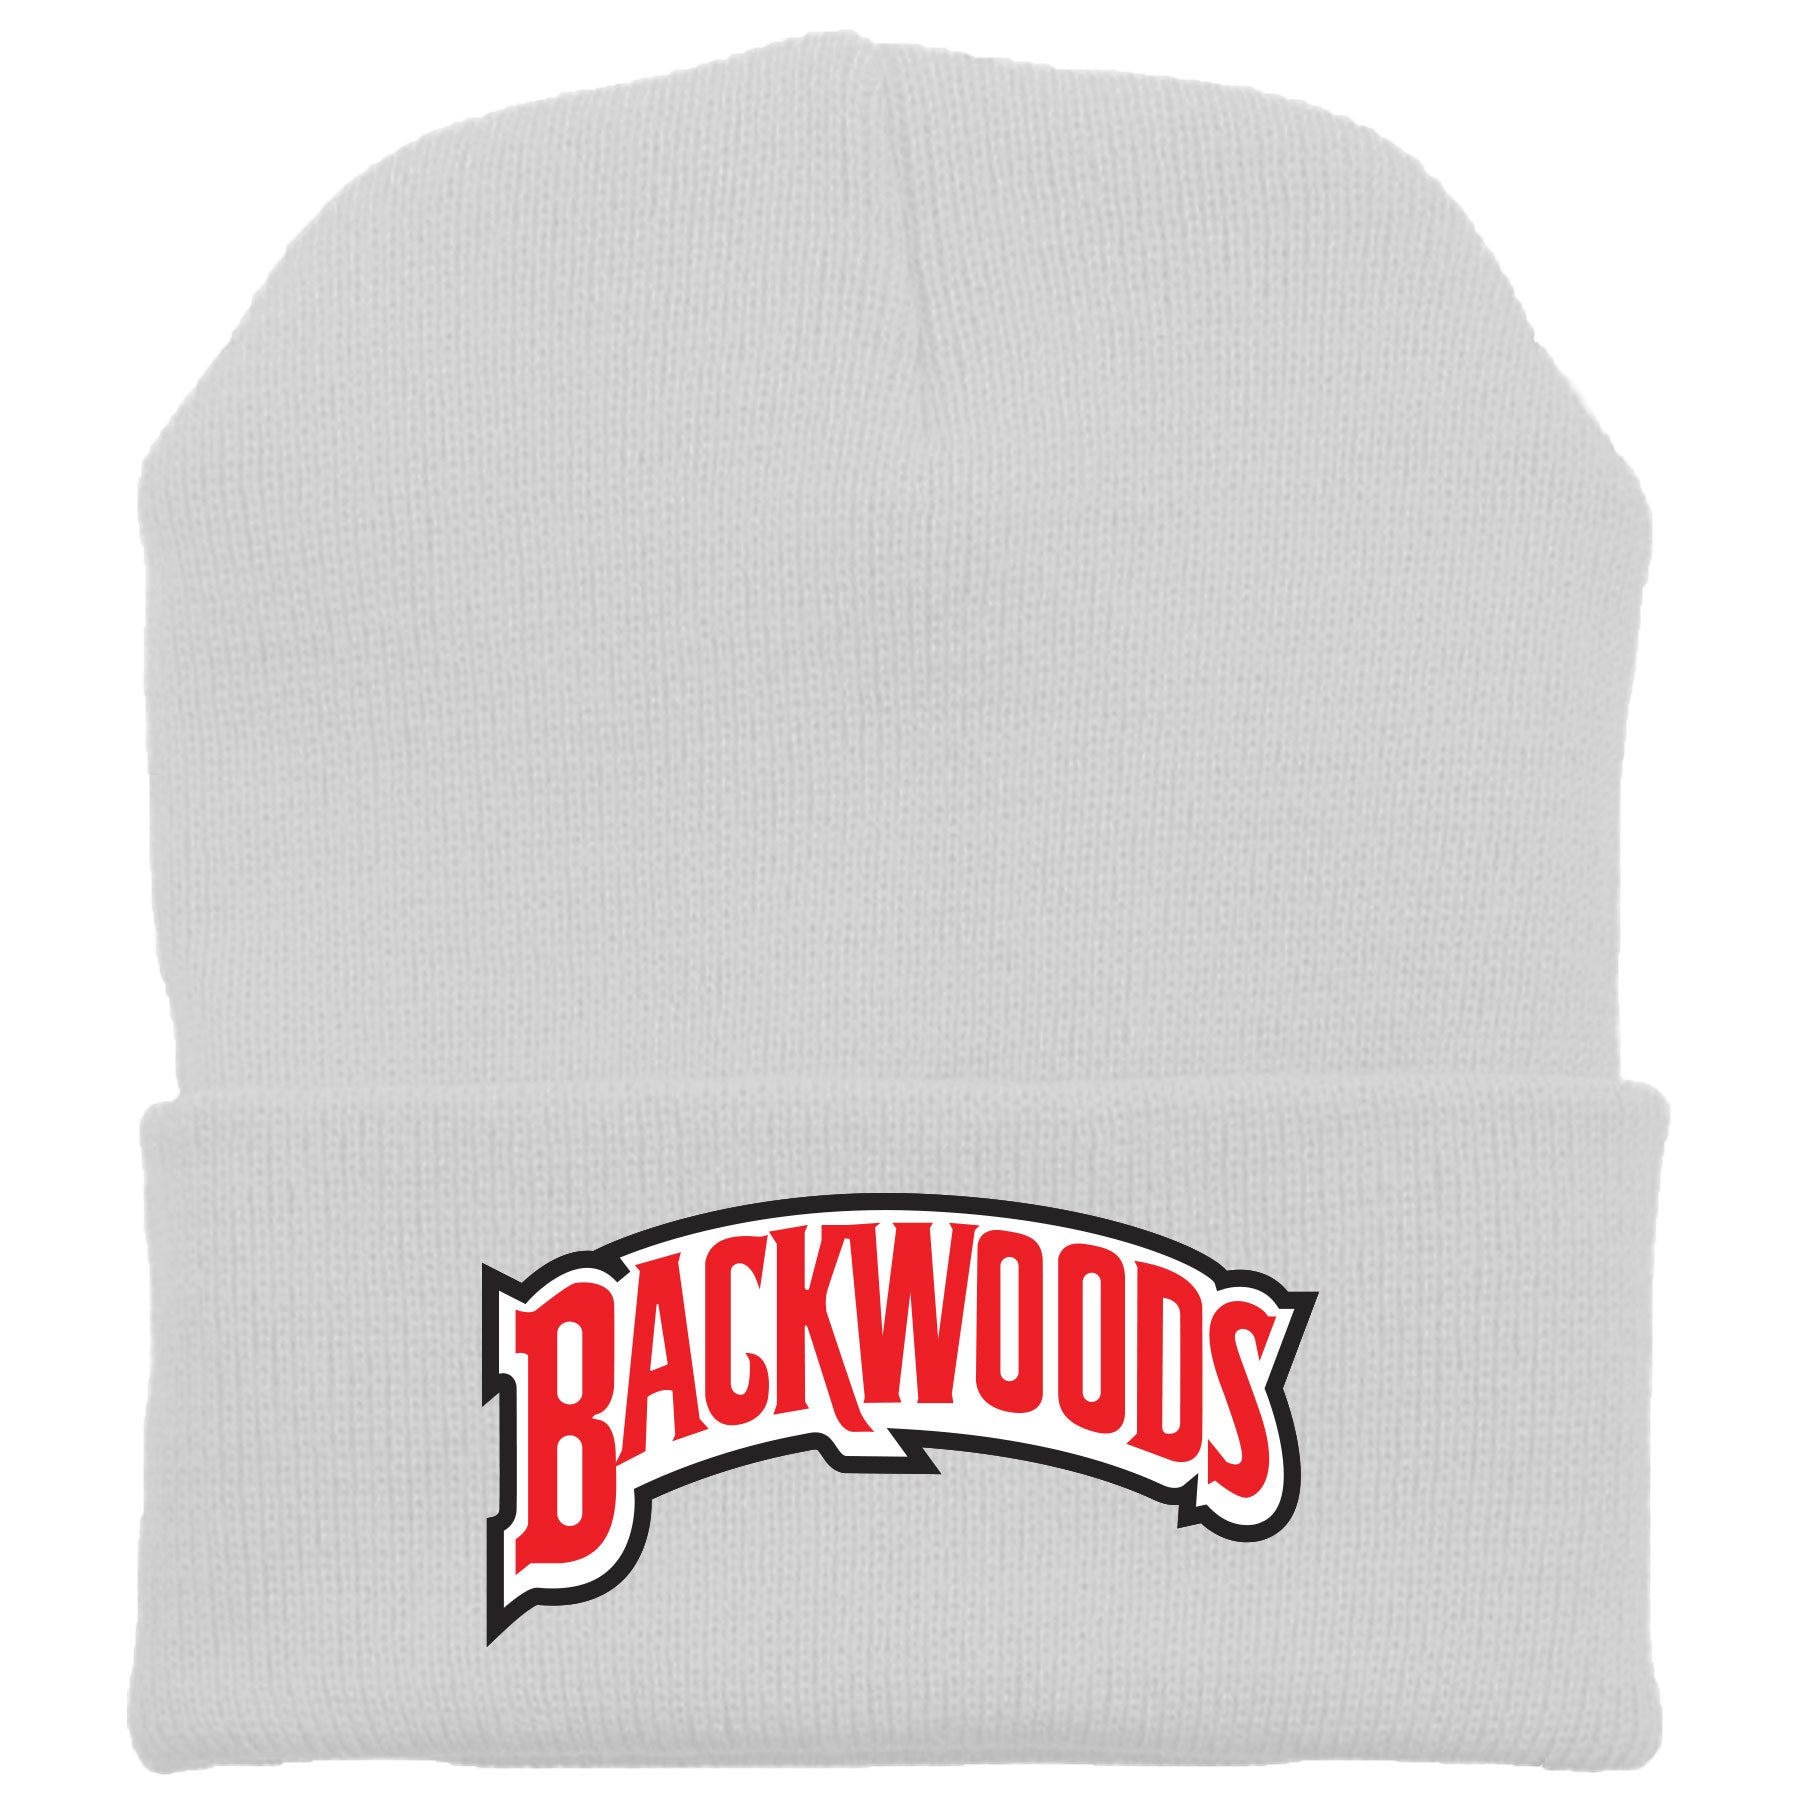 Embroidered on the front of the Backwoods Russian Cream white beanie is the  Backwoods logo embroidered 4a84c9645bef